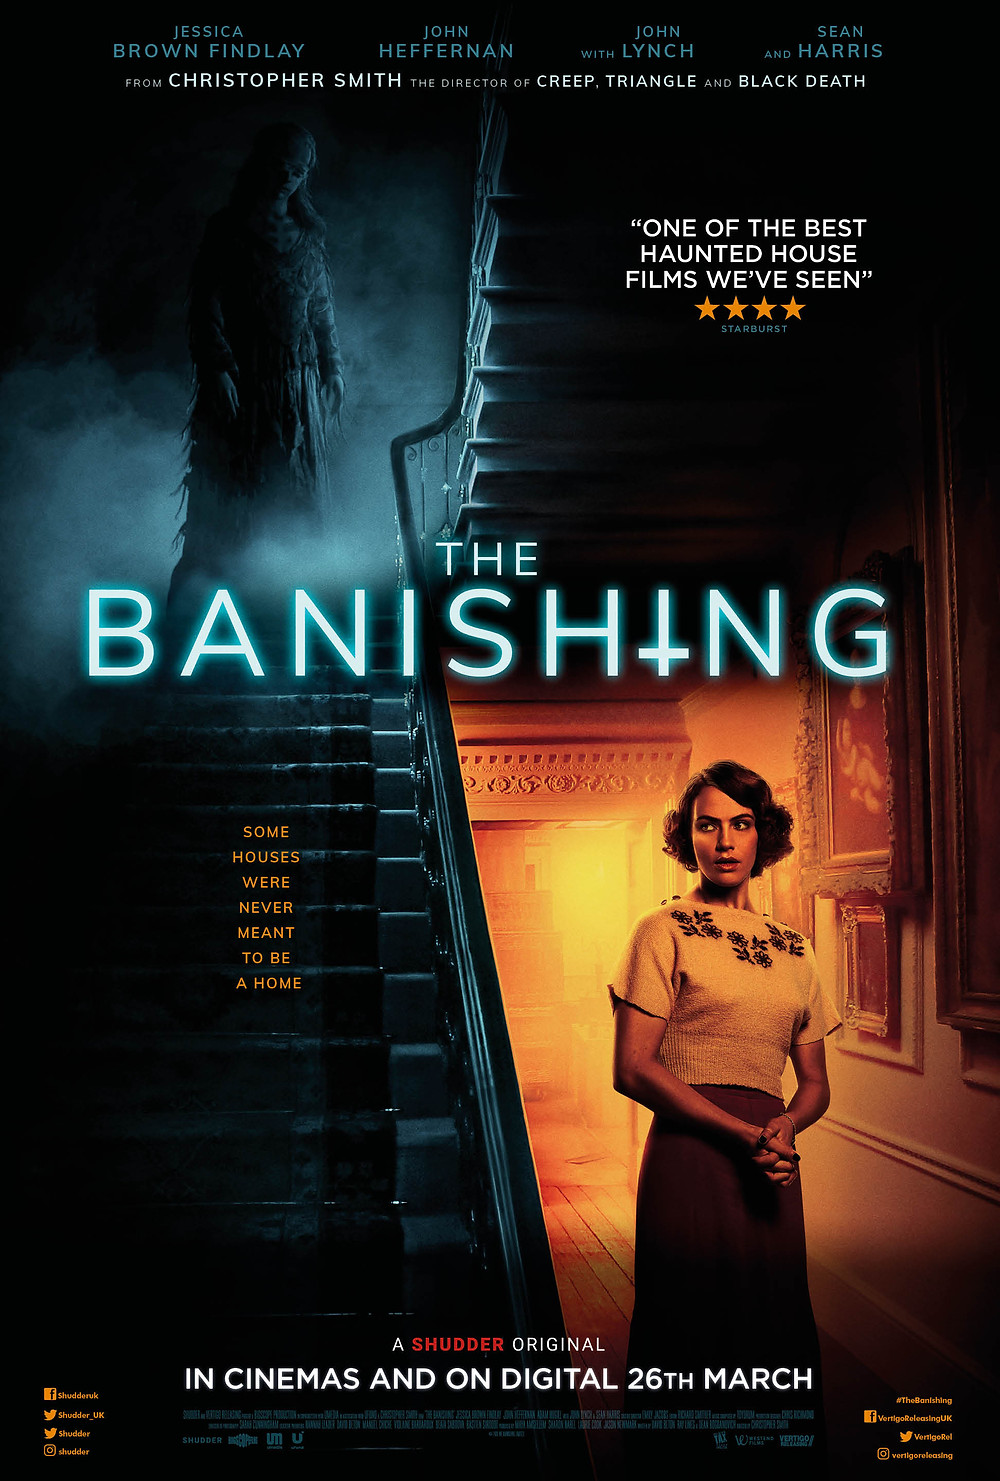 The Banishing movie poster